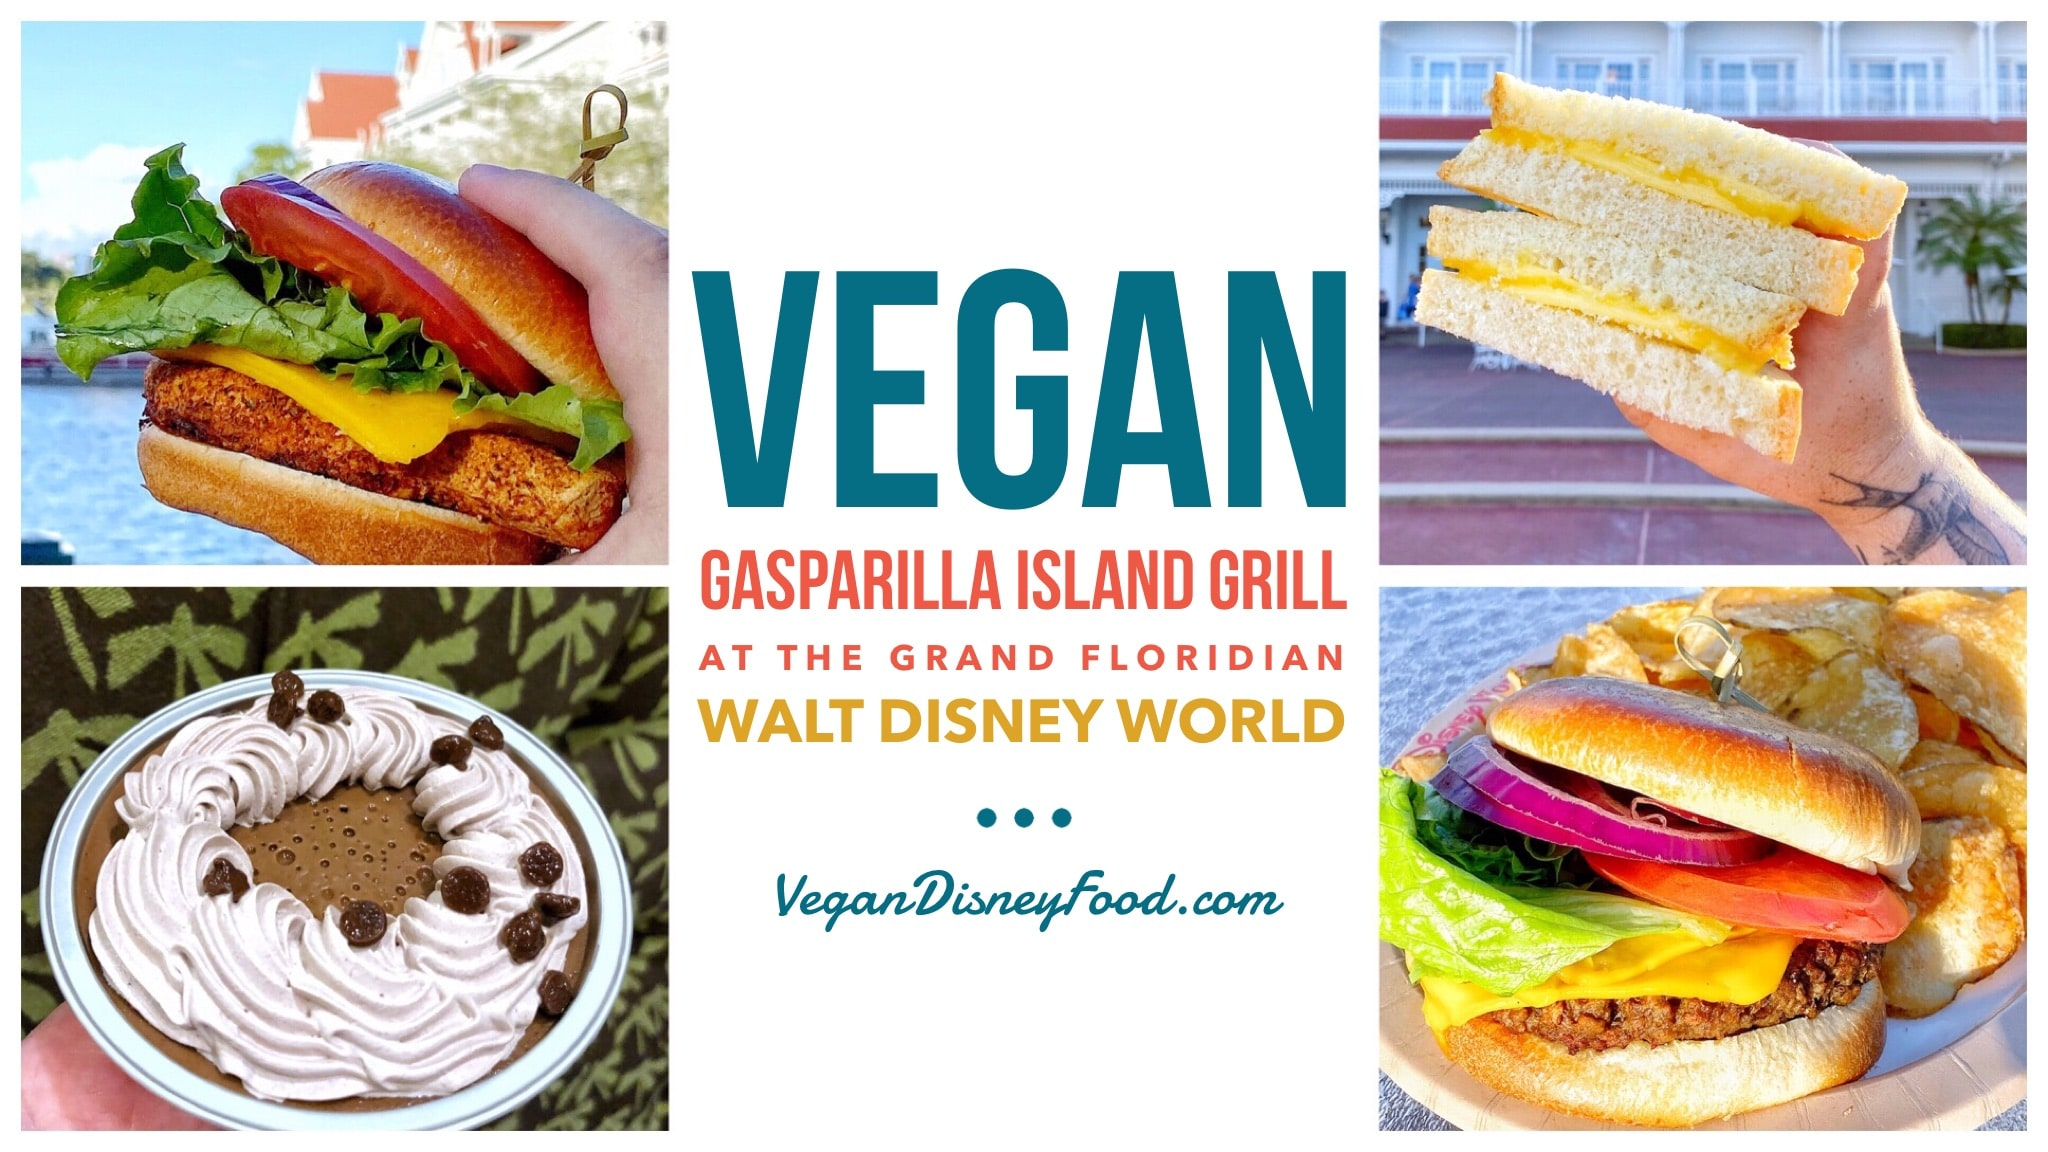 Vegan Options at Gasparilla Island Grill in Disney's Grand Floridian Resort at Walt Disney World